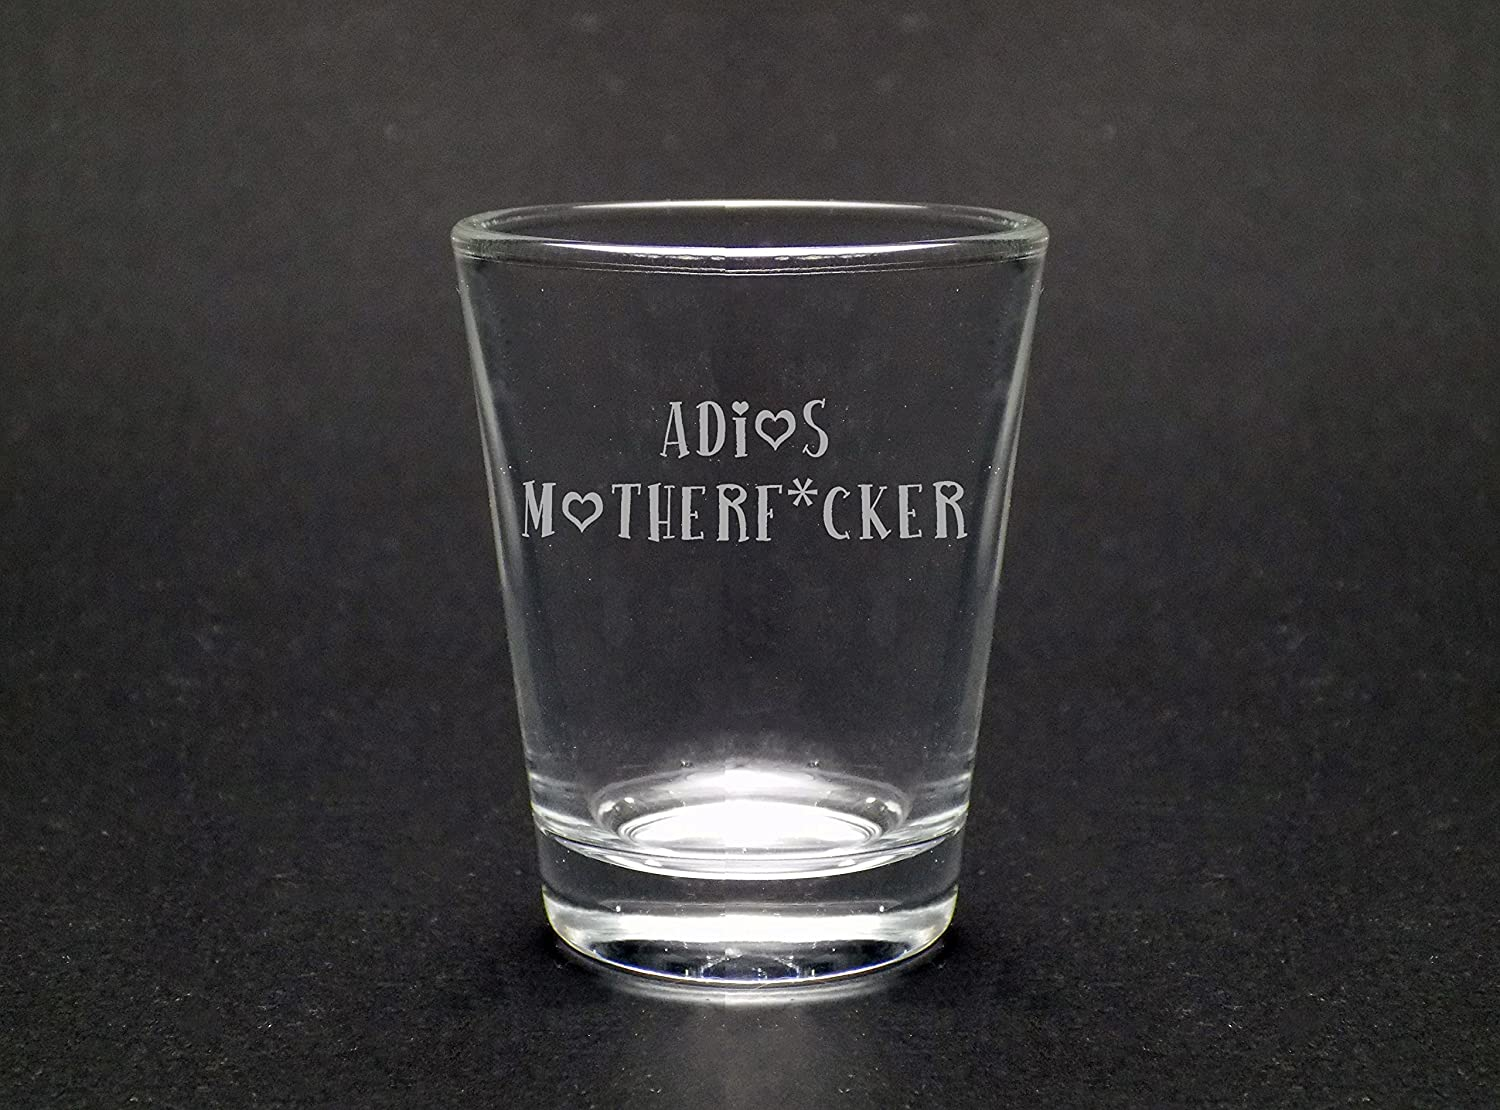 Adios Motherf*cker 1.75 oz Shot Glass